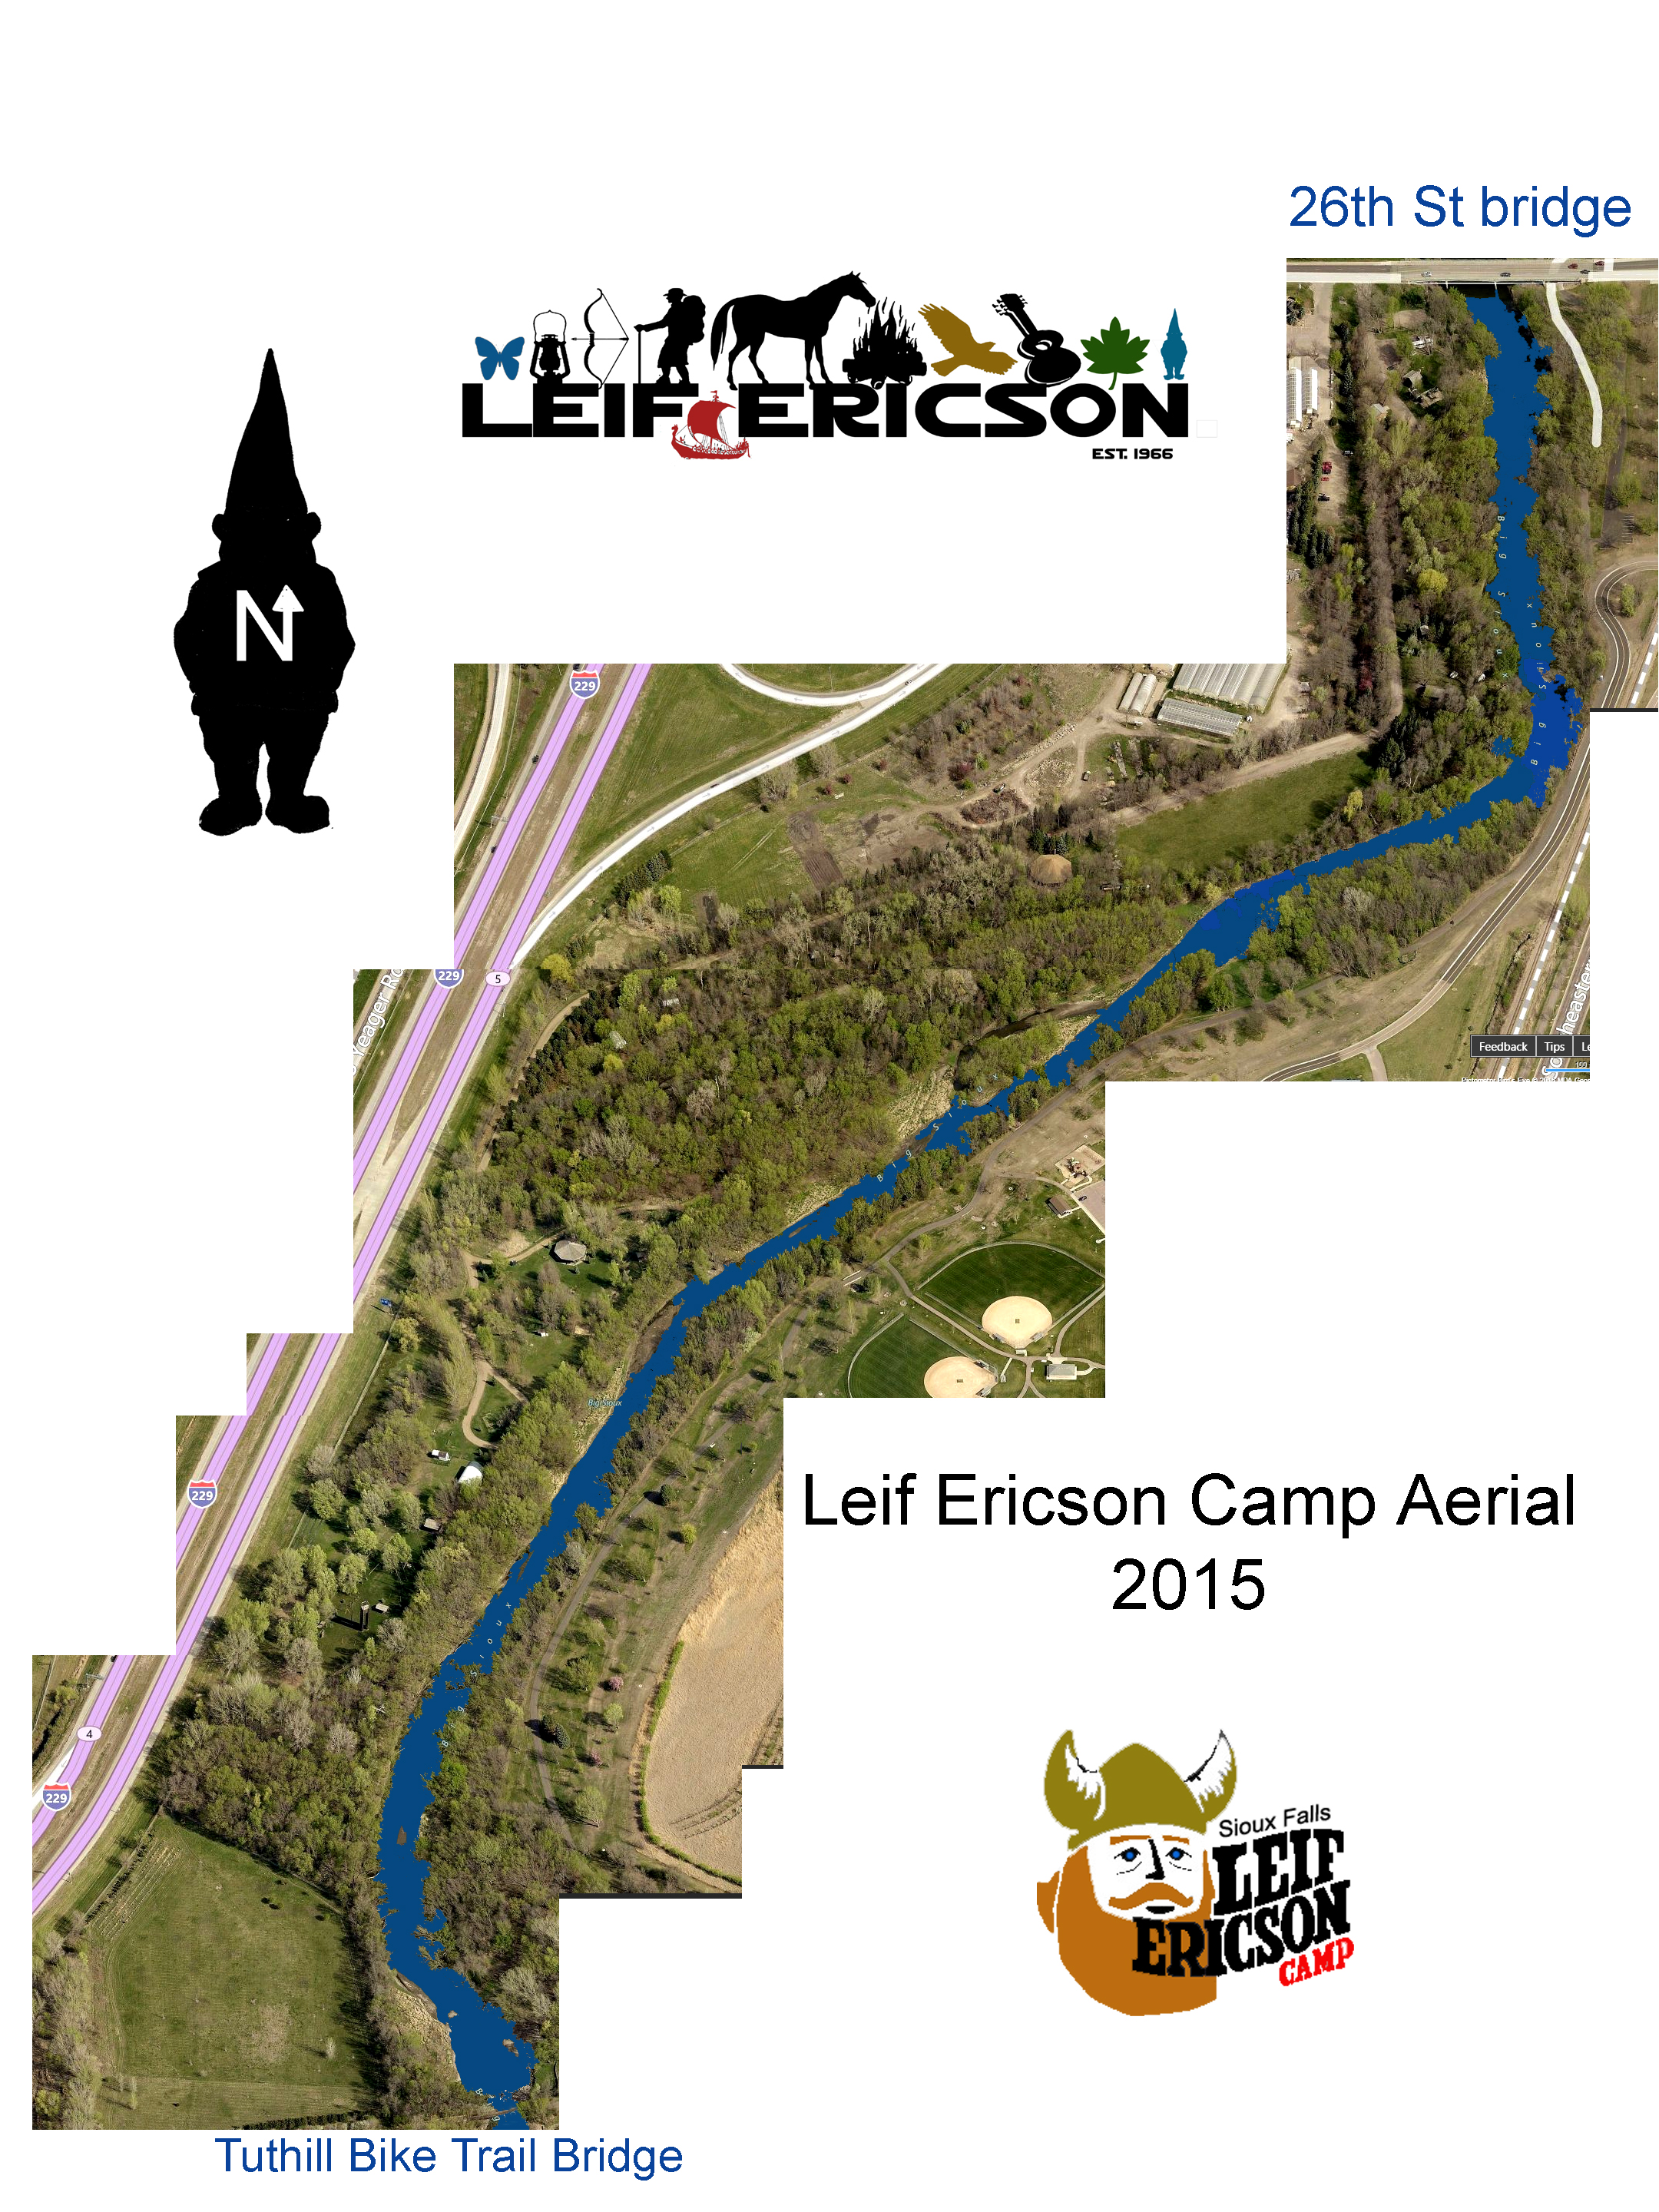 camp aerial with logos copy